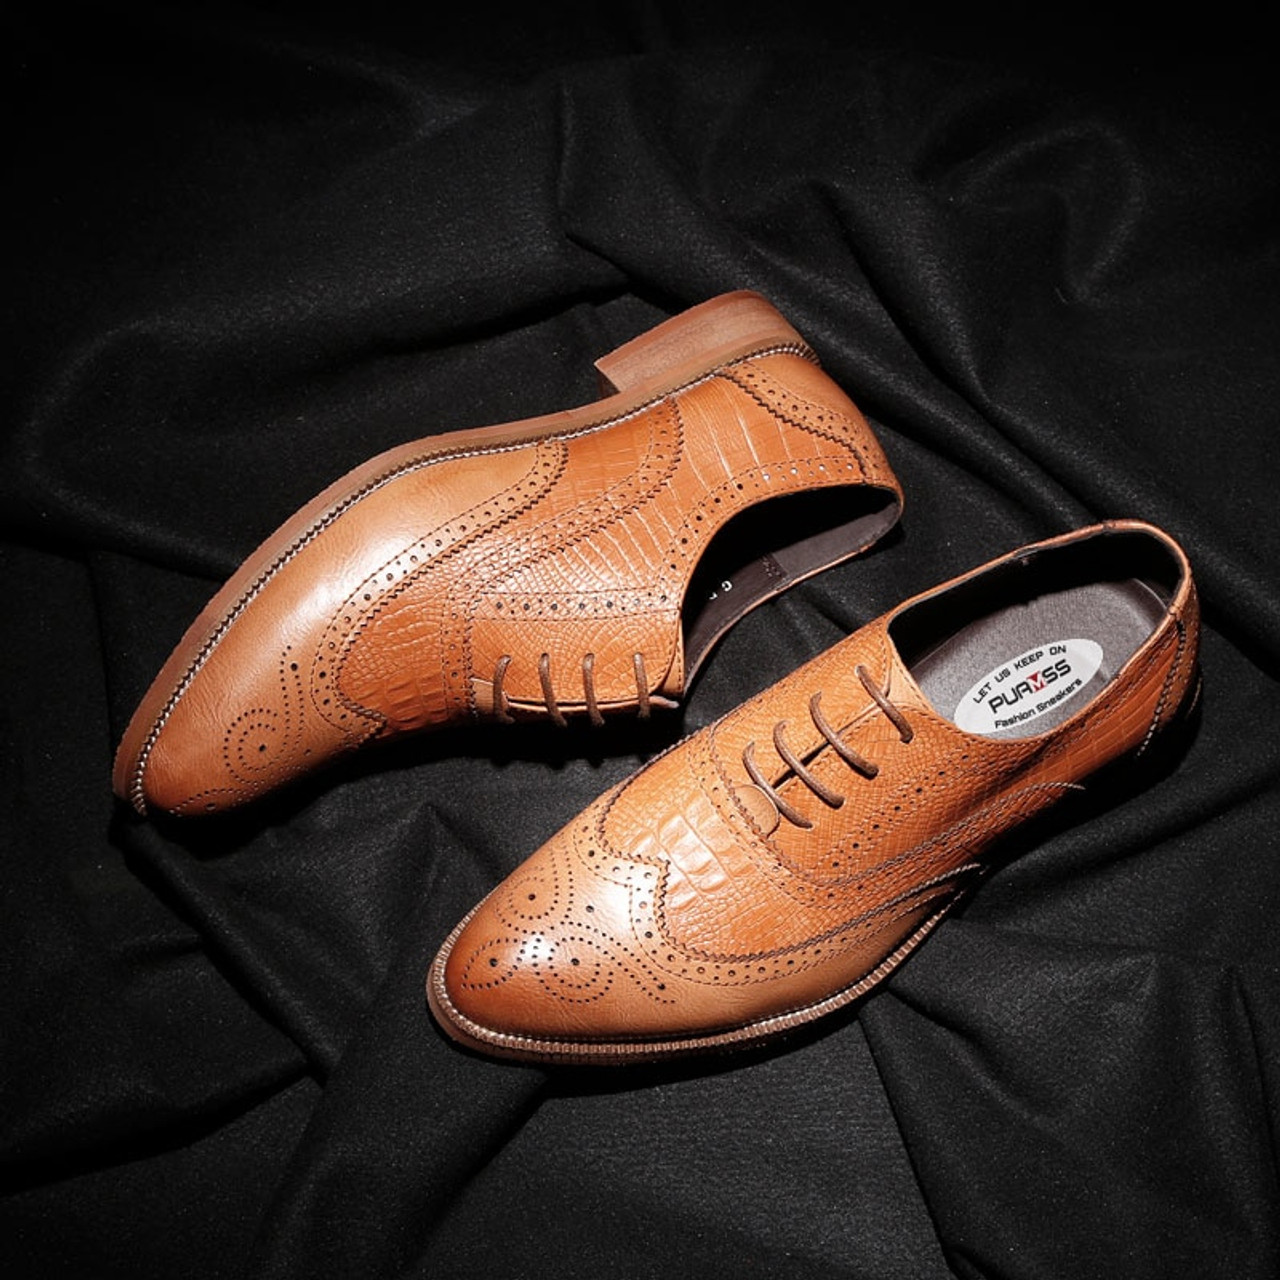 ... 2018 New Men Dress Shoes Handmade British Brogue Style Paty Leather  Wedding Shoes Men Flats Leather ... 0bf166c0a65d